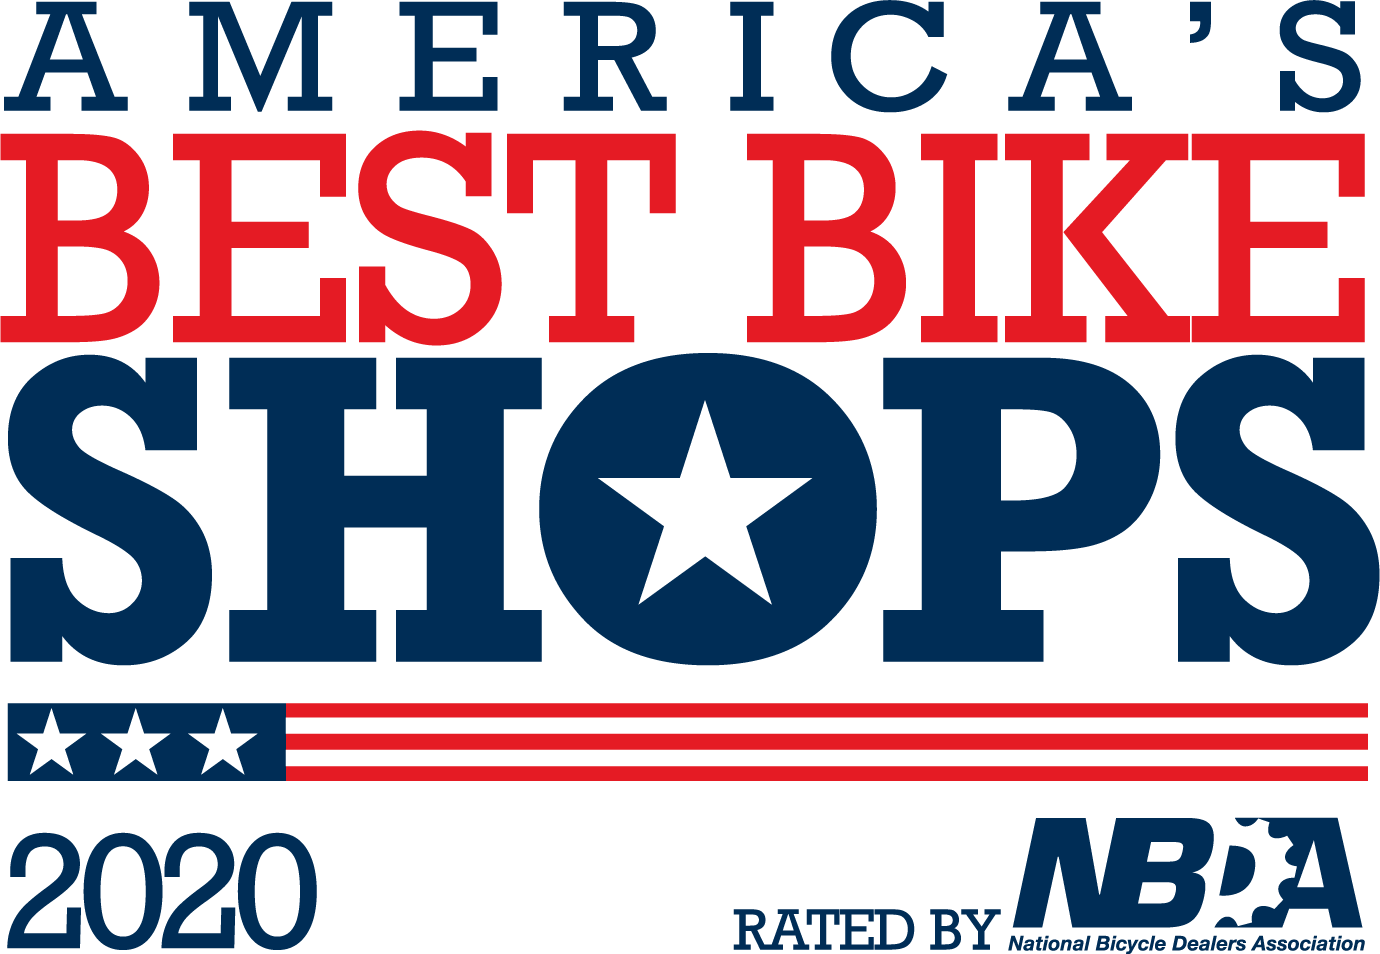 America's Best Bike Shop logo